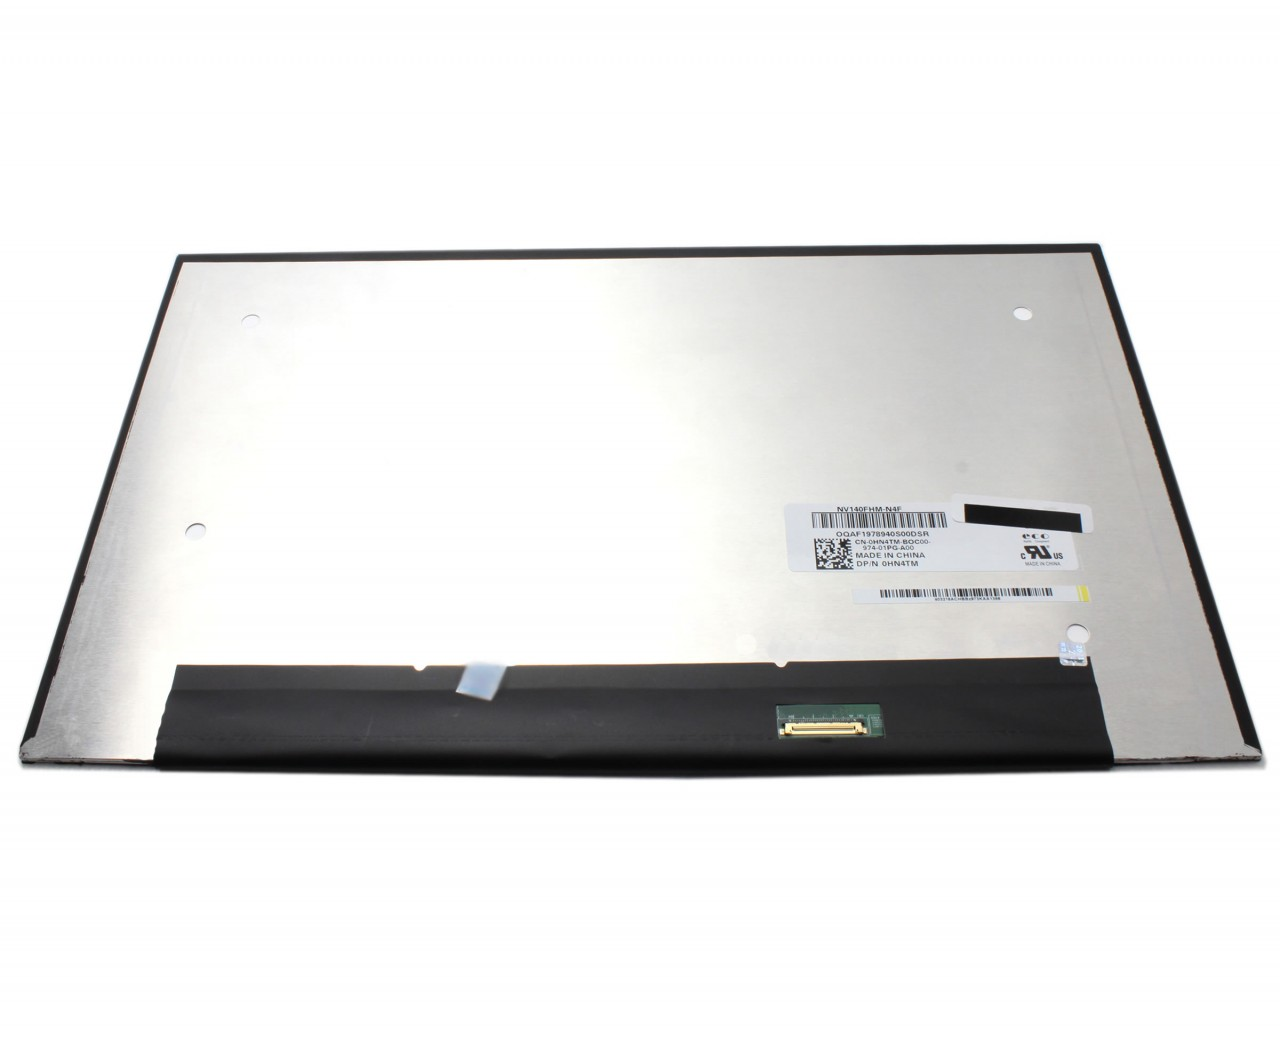 Display laptop Dell 0HN4TM Ecran 14.0 1920x1080 30 pinni eDP imagine powerlaptop.ro 2021